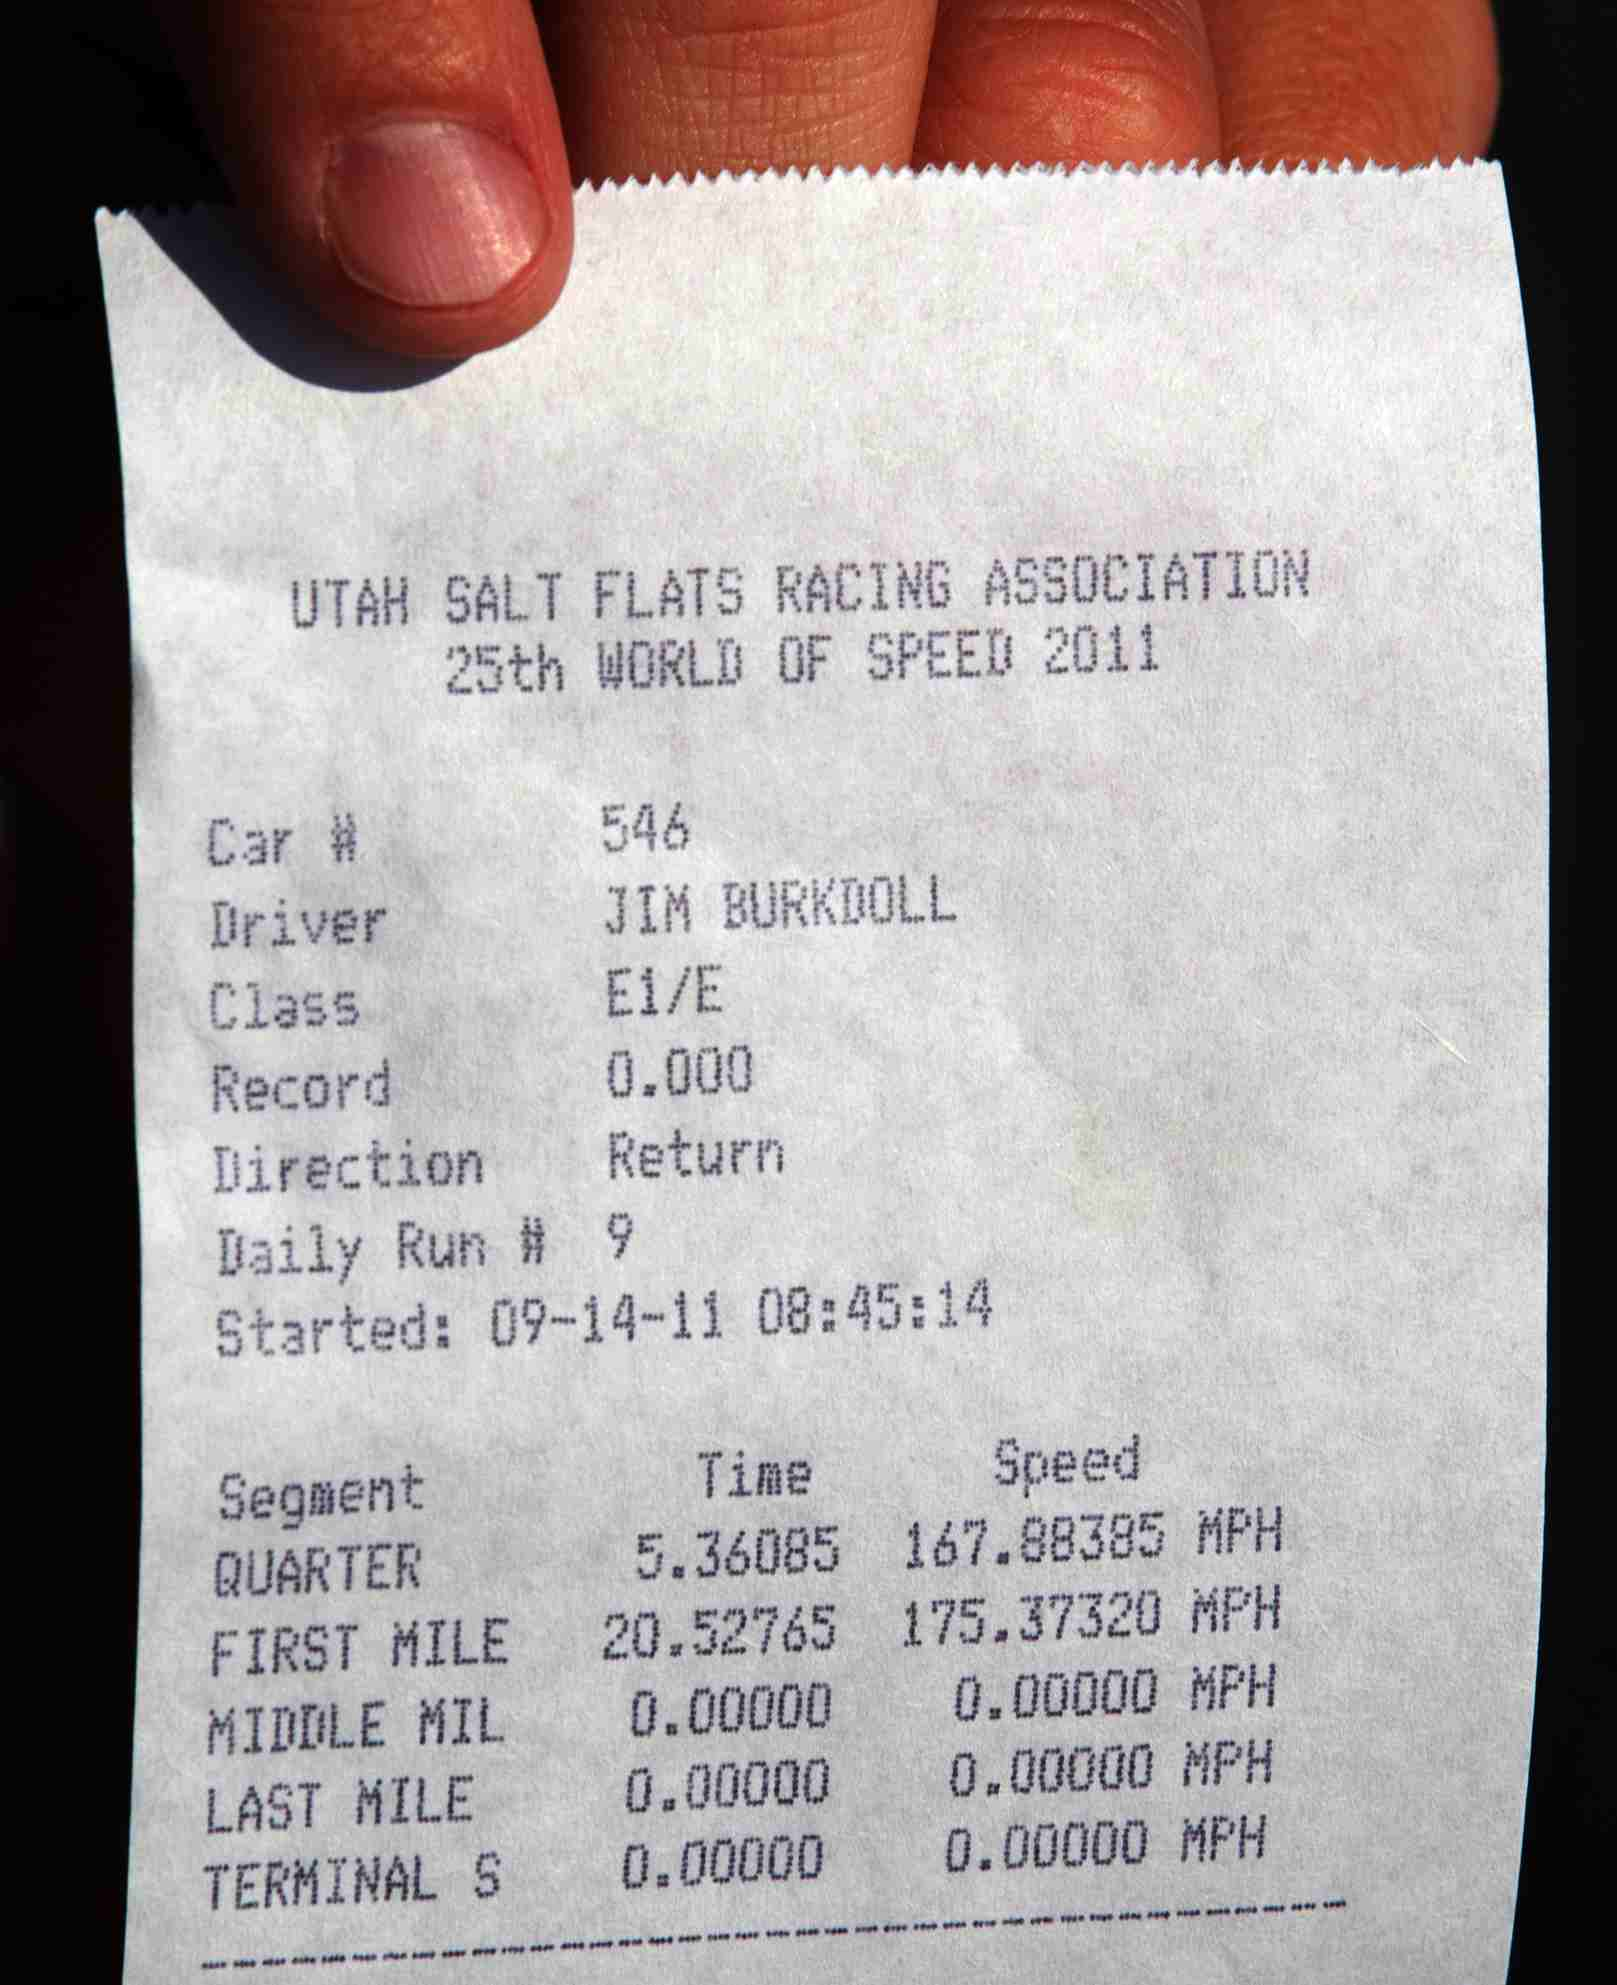 Utah salt flats racing association timing ticket for Electric Blue